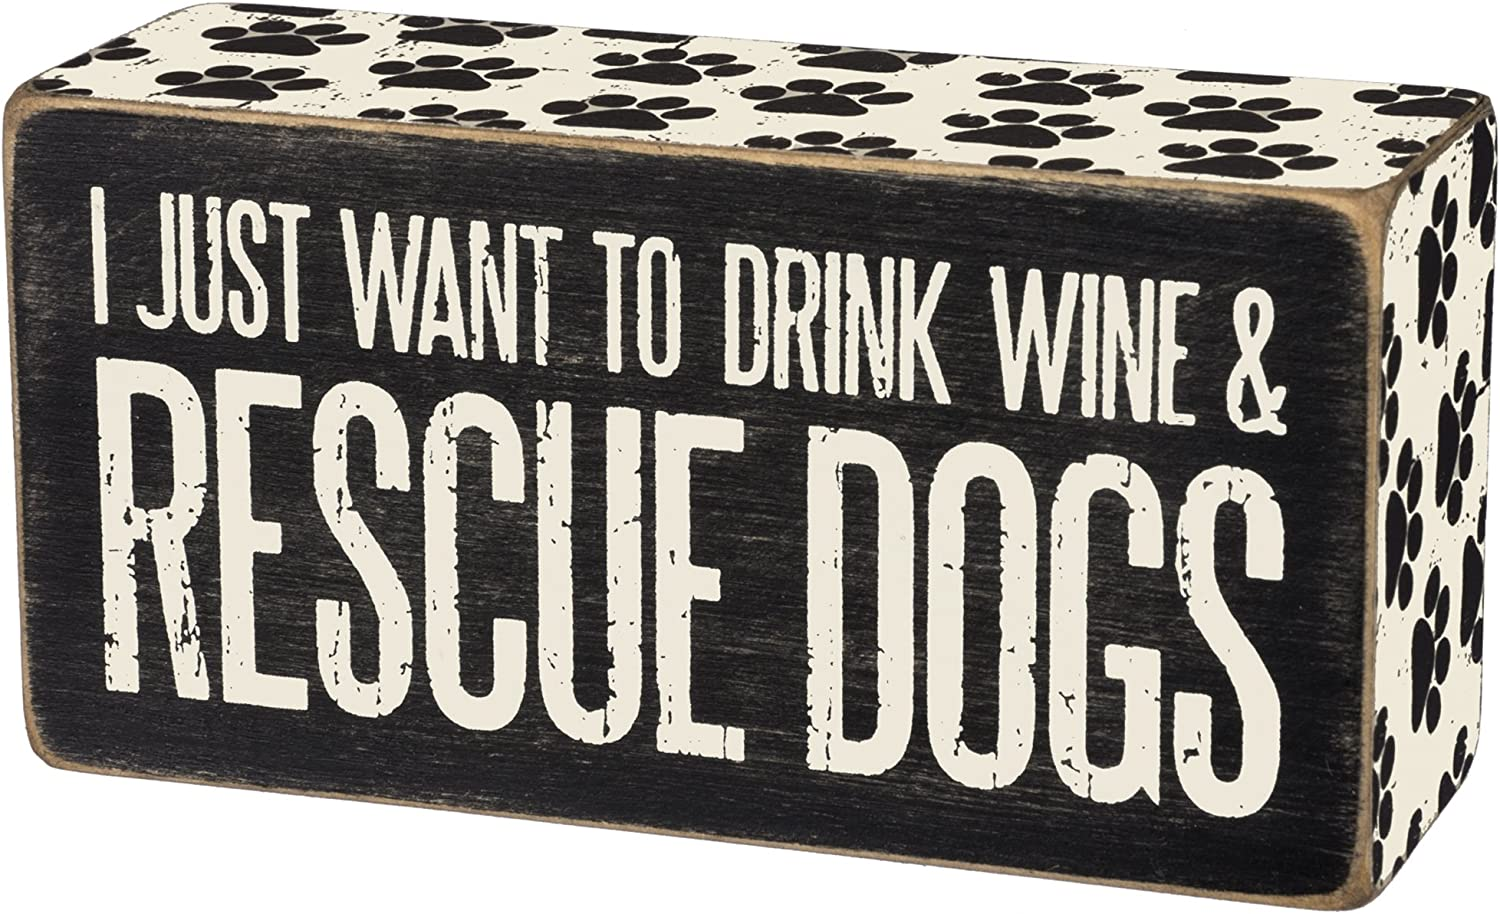 Primitives by Kathy I Just Want To Drink Wine & Rescue Dogs - Wood Box Sign - Black & White for wall hanging, table or desk 5-in